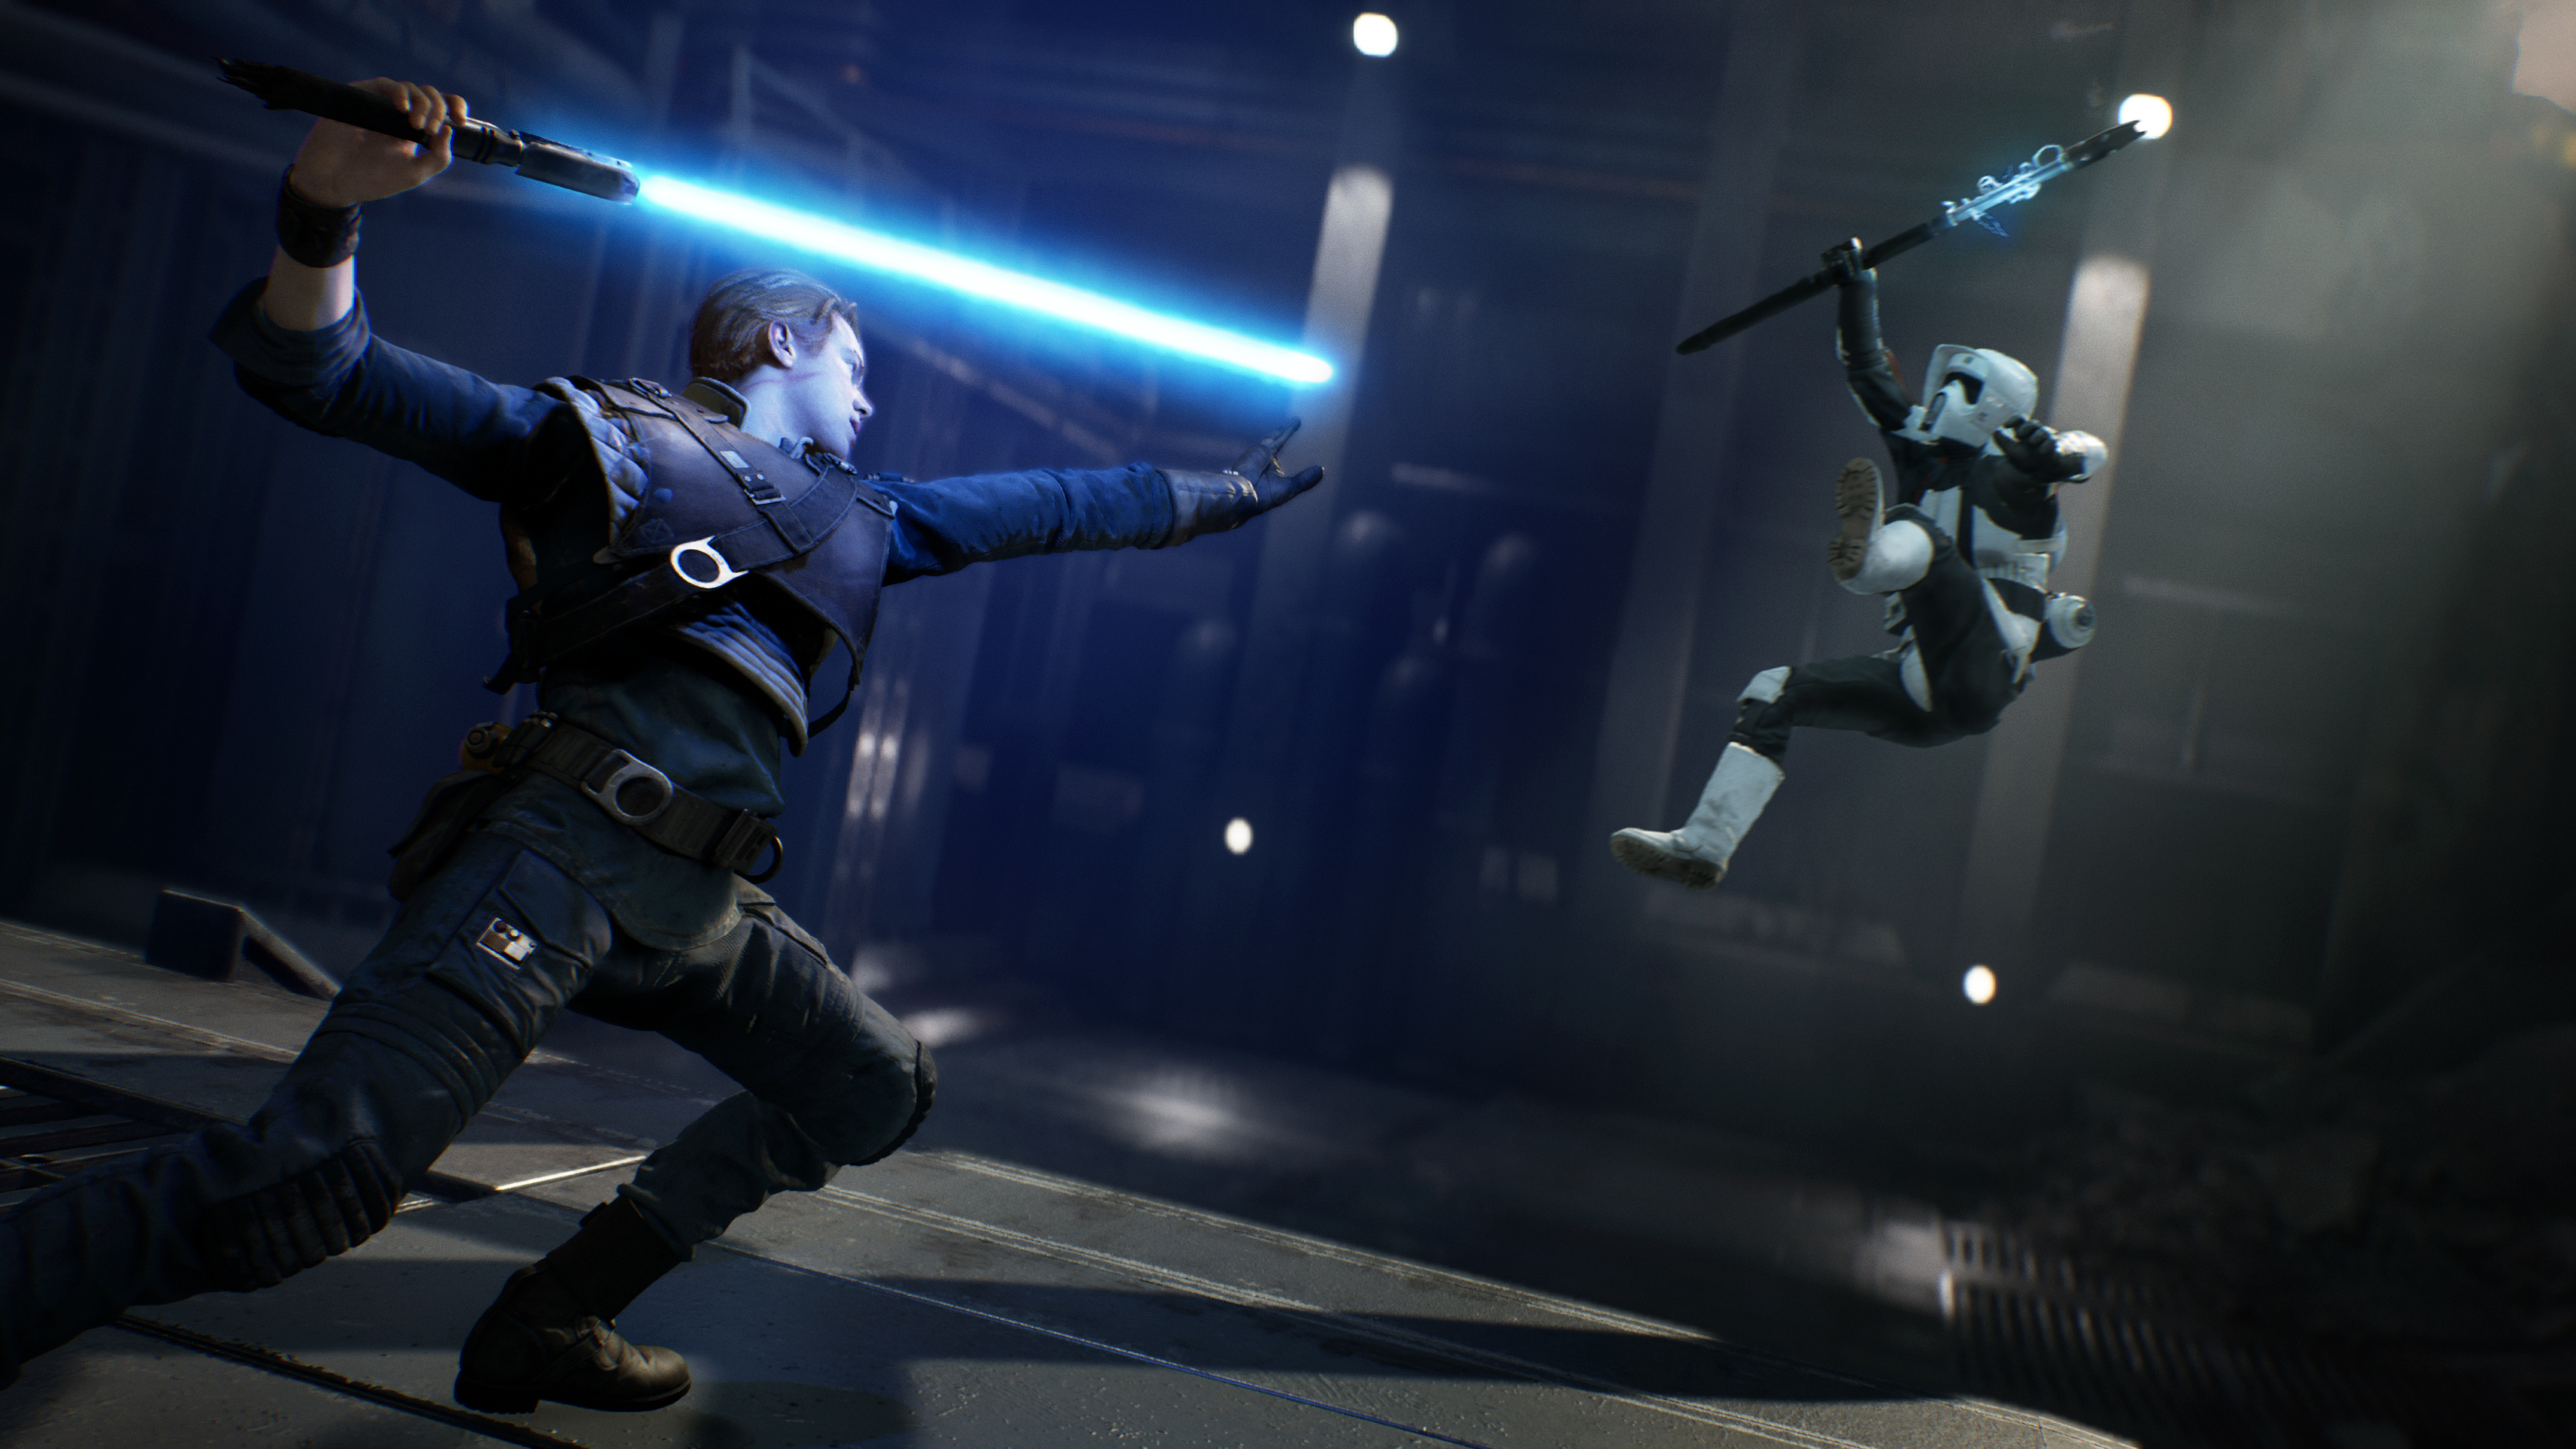 10 4k Hd Star Wars Jedi Fallen Order Wallpapers You Need